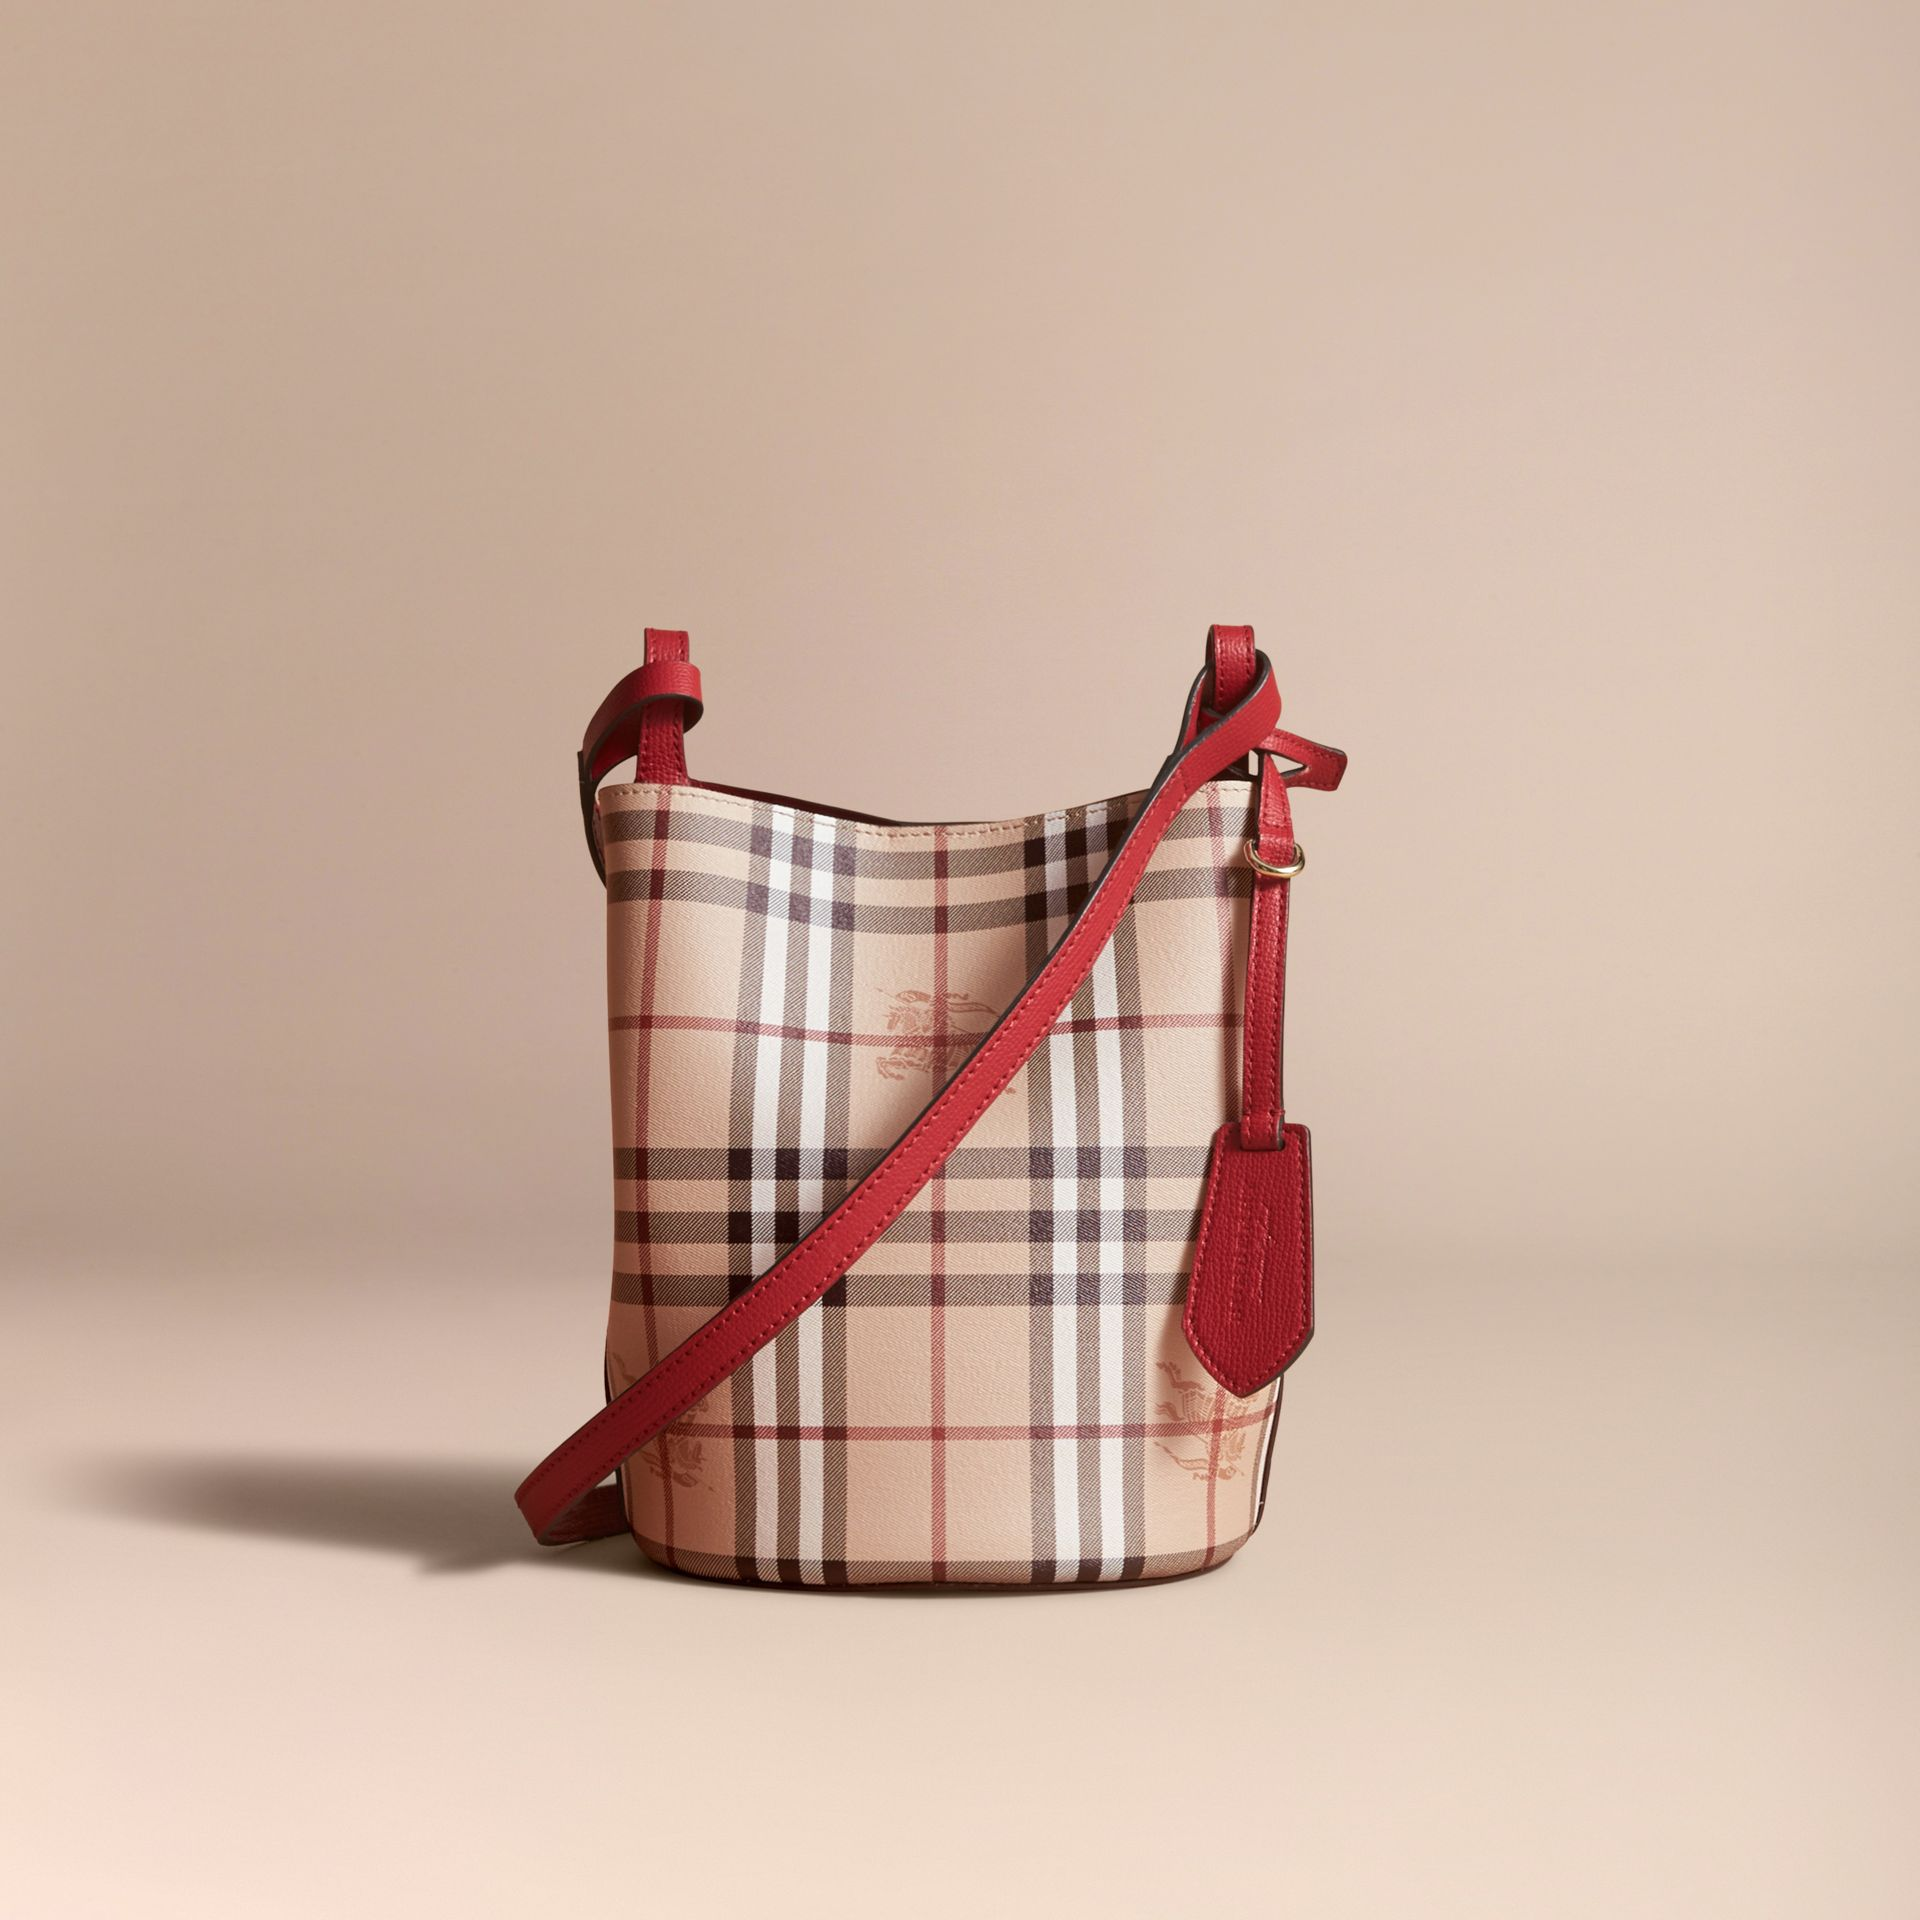 Leather and Haymarket Check Crossbody Bucket Bag in Poppy Red - Women | Burberry United Kingdom - gallery image 7